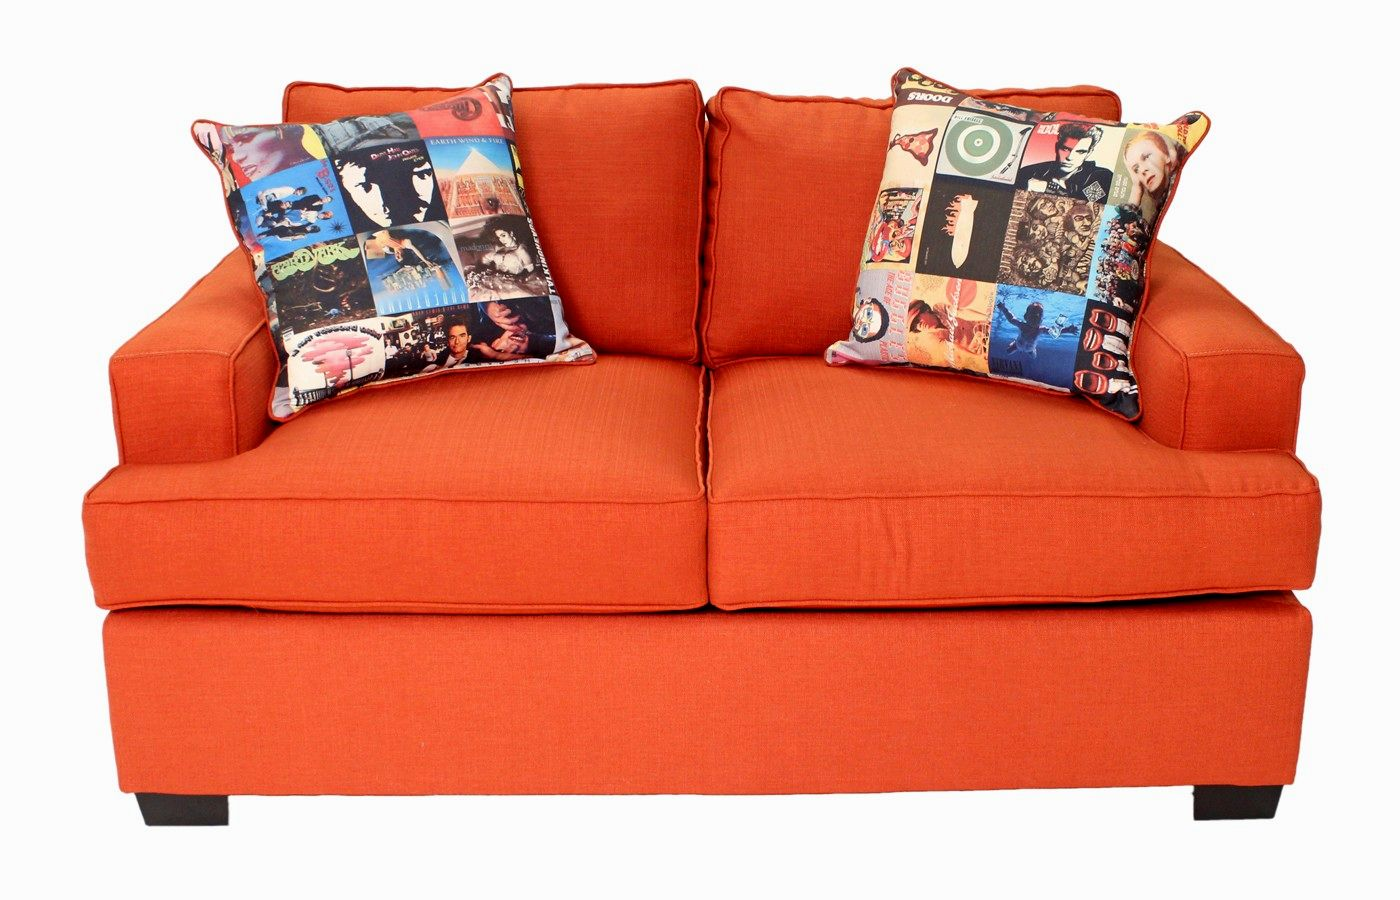 cool sectional leather sofa online-Stylish Sectional Leather sofa Image